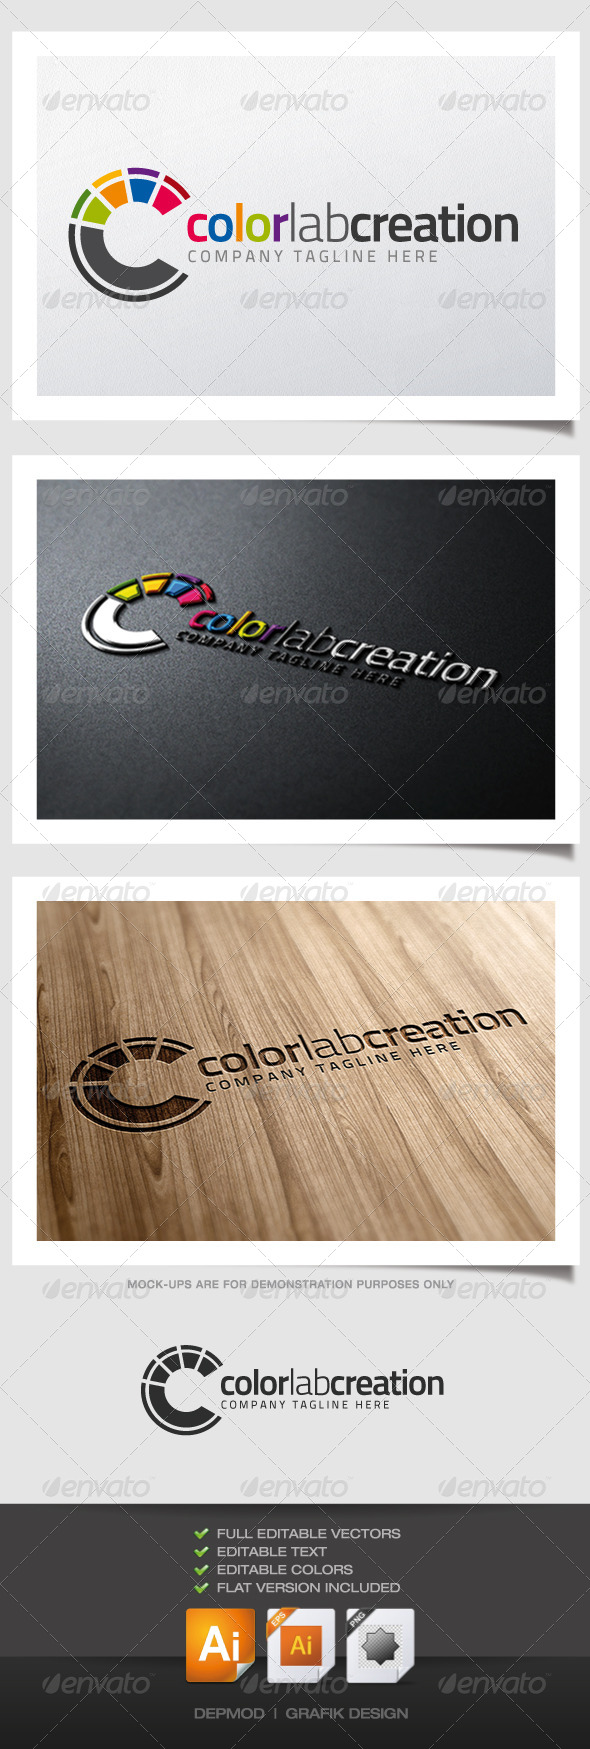 Color Lab Creation Logo - Letters Logo Templates